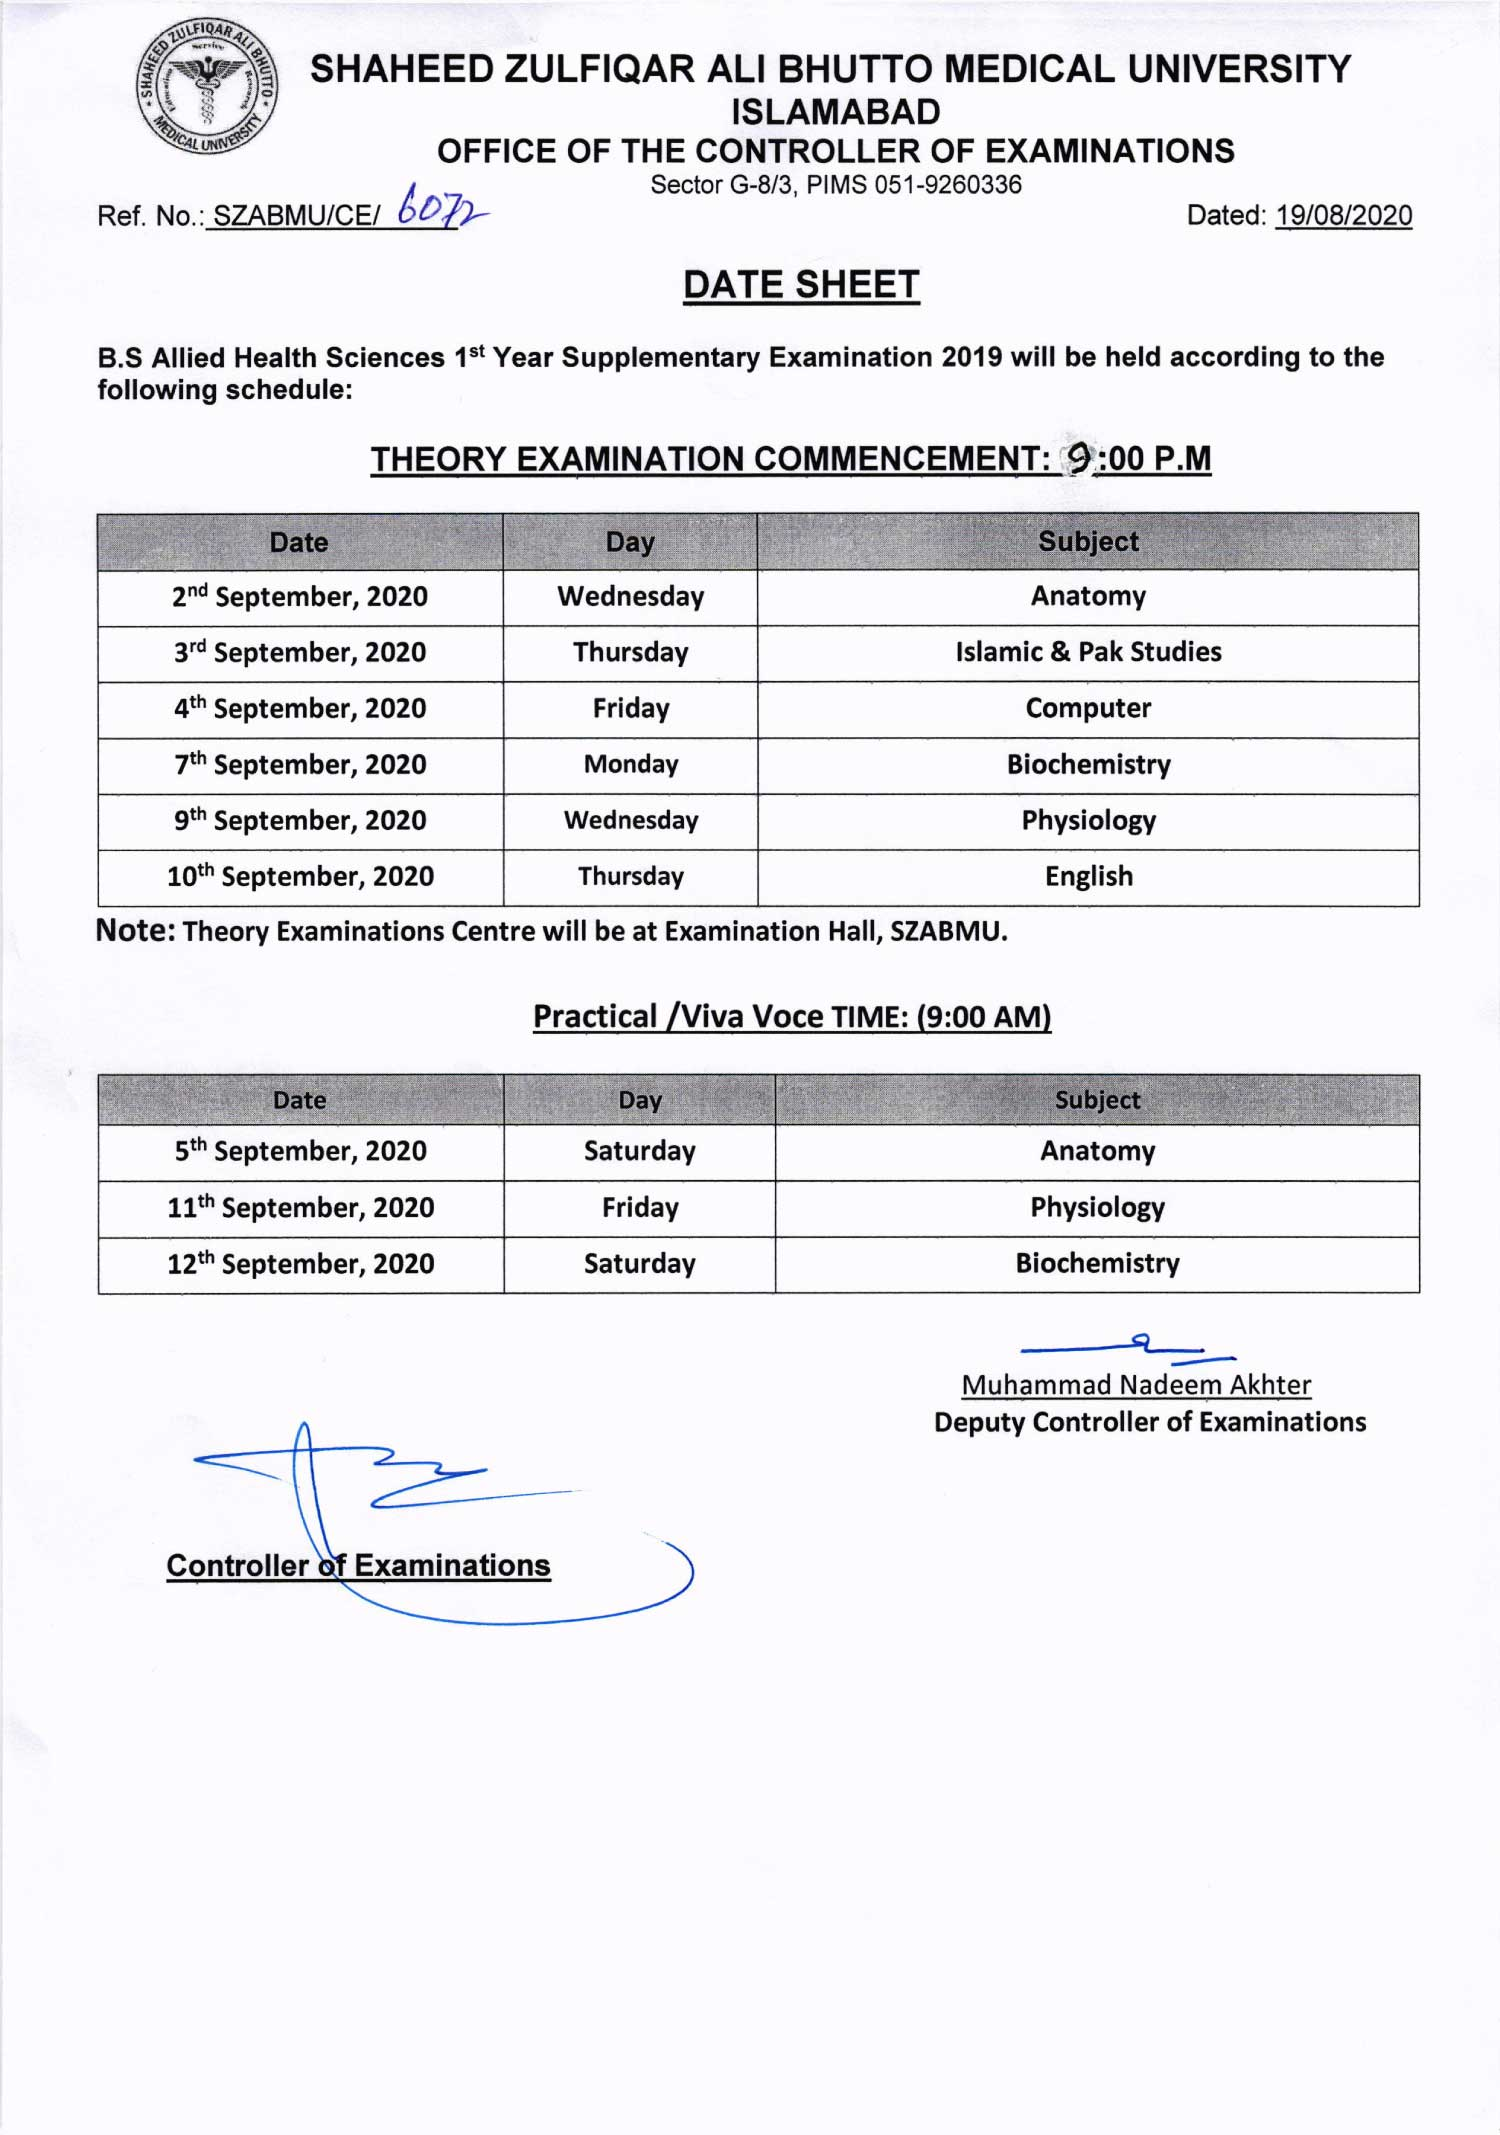 Date Sheet of B.S AHS 1st Year Supplementary Examination 2019